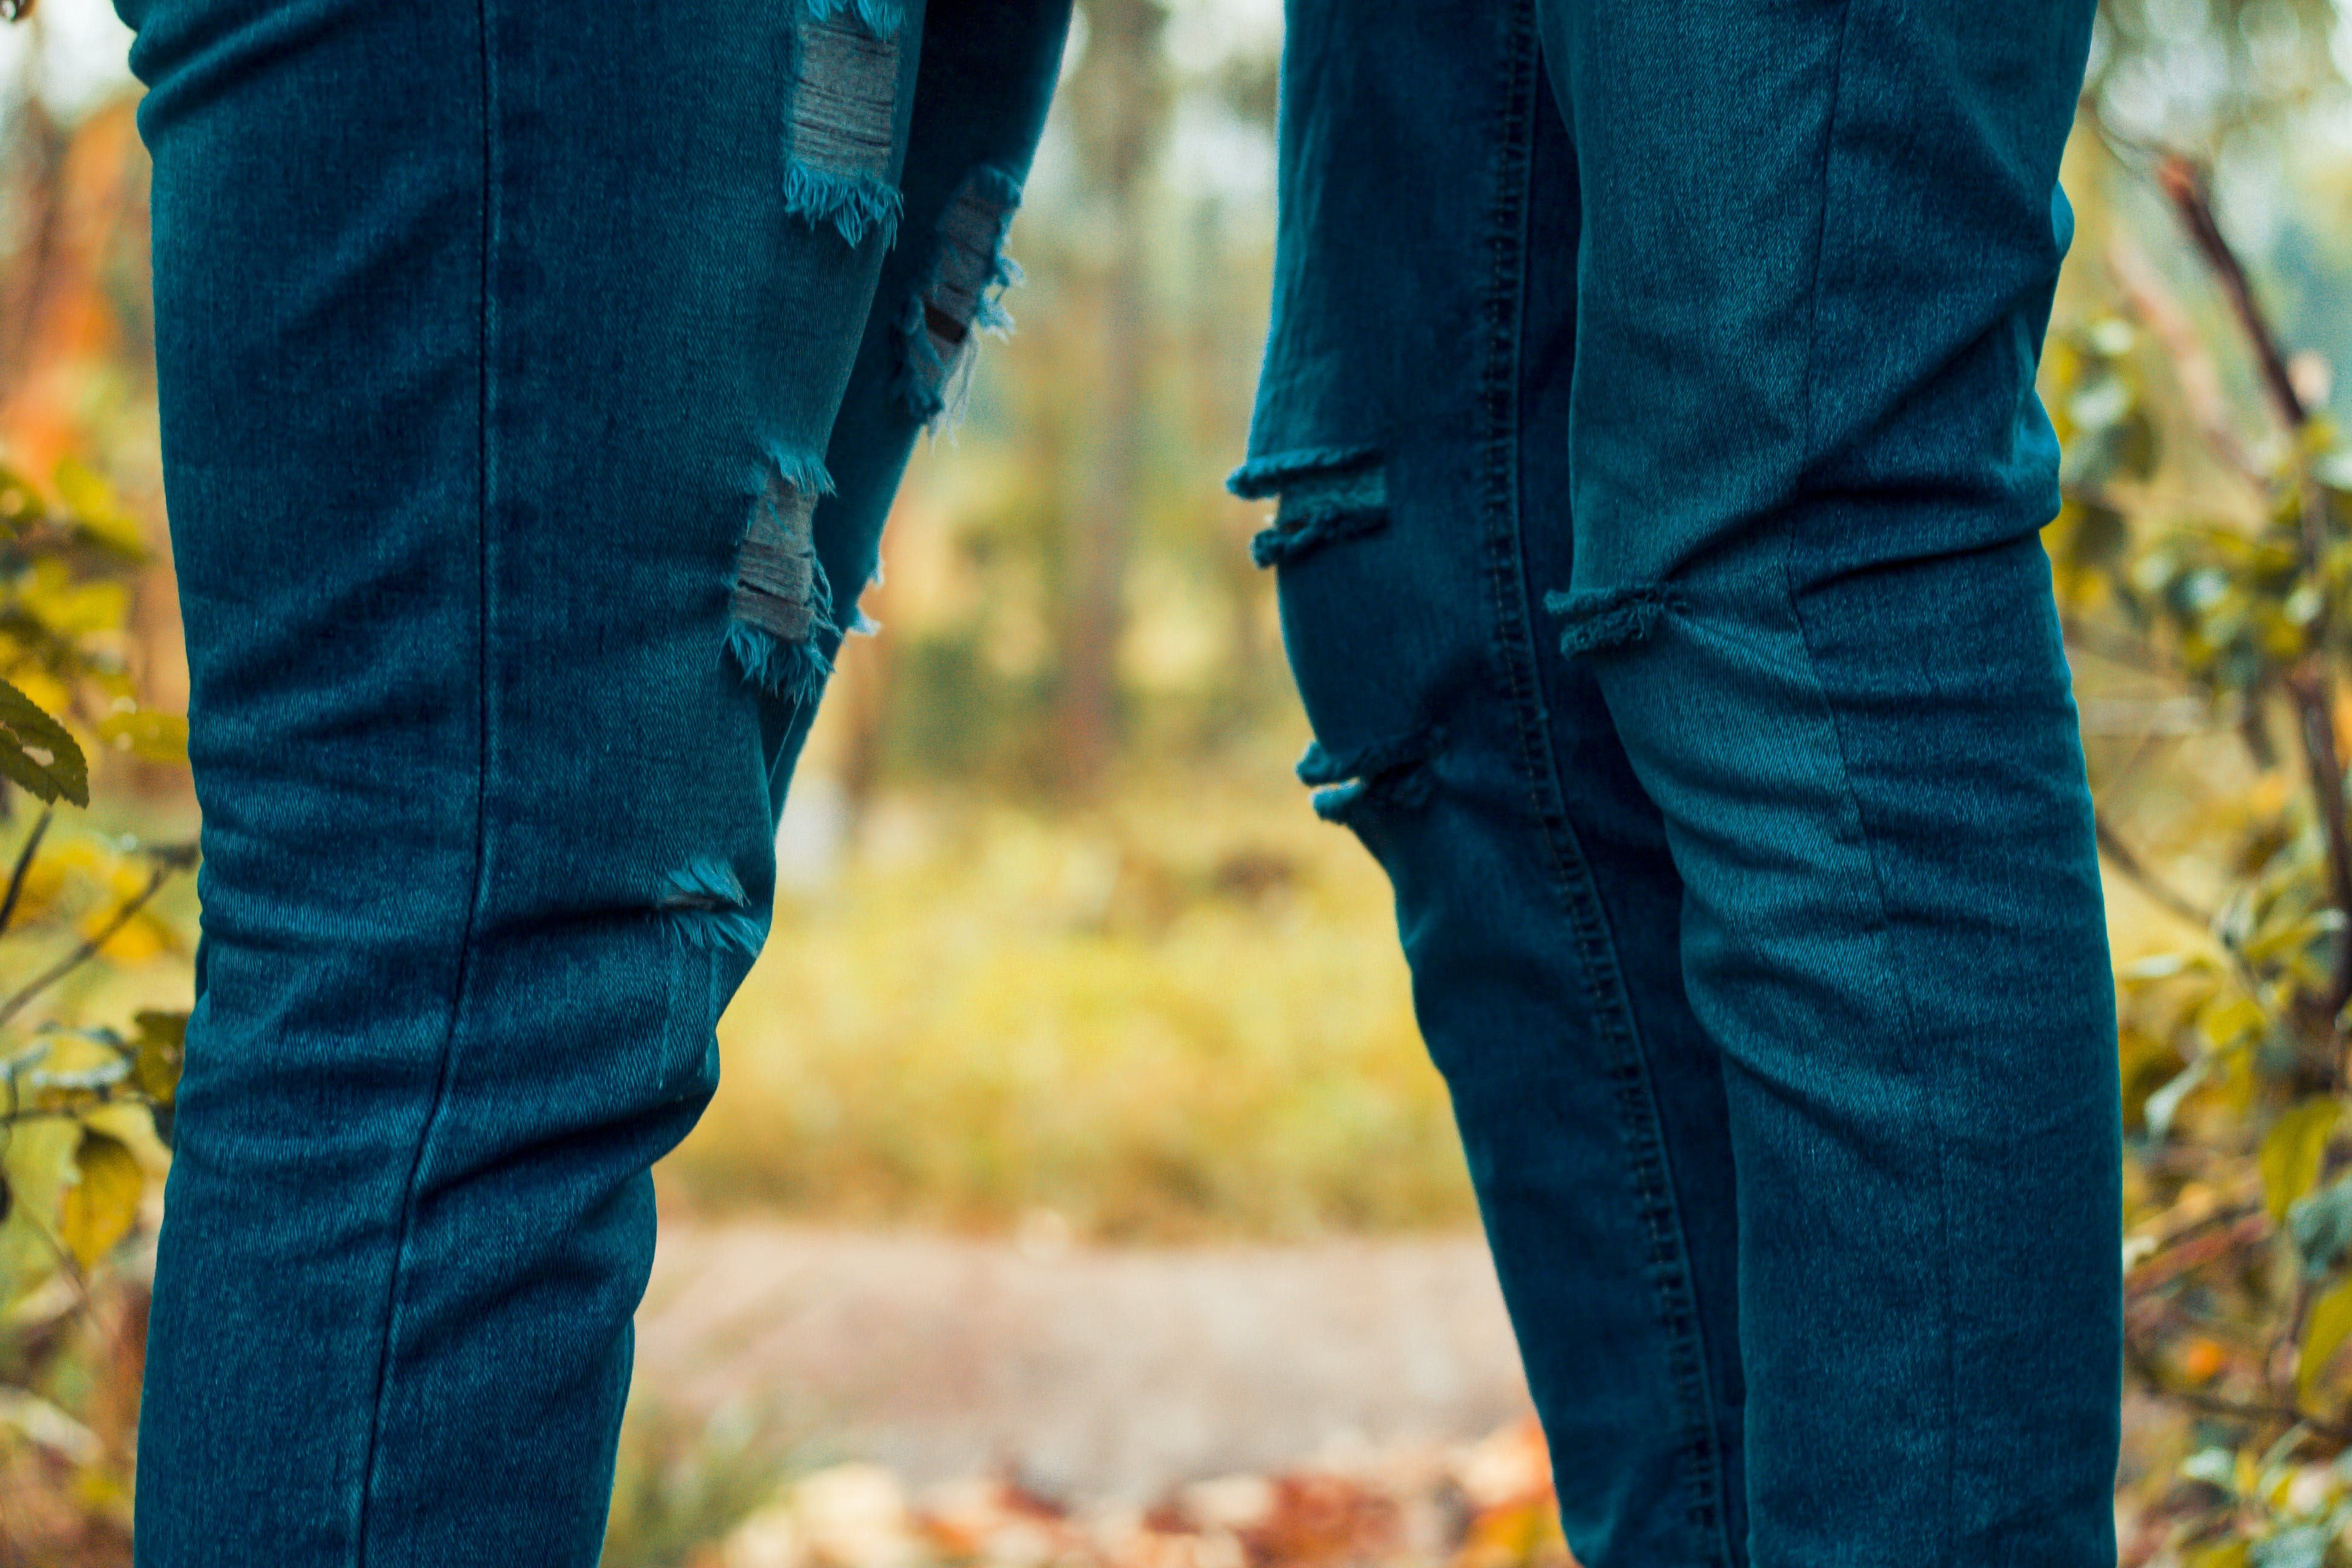 Two People Wearing Rugged Jeans